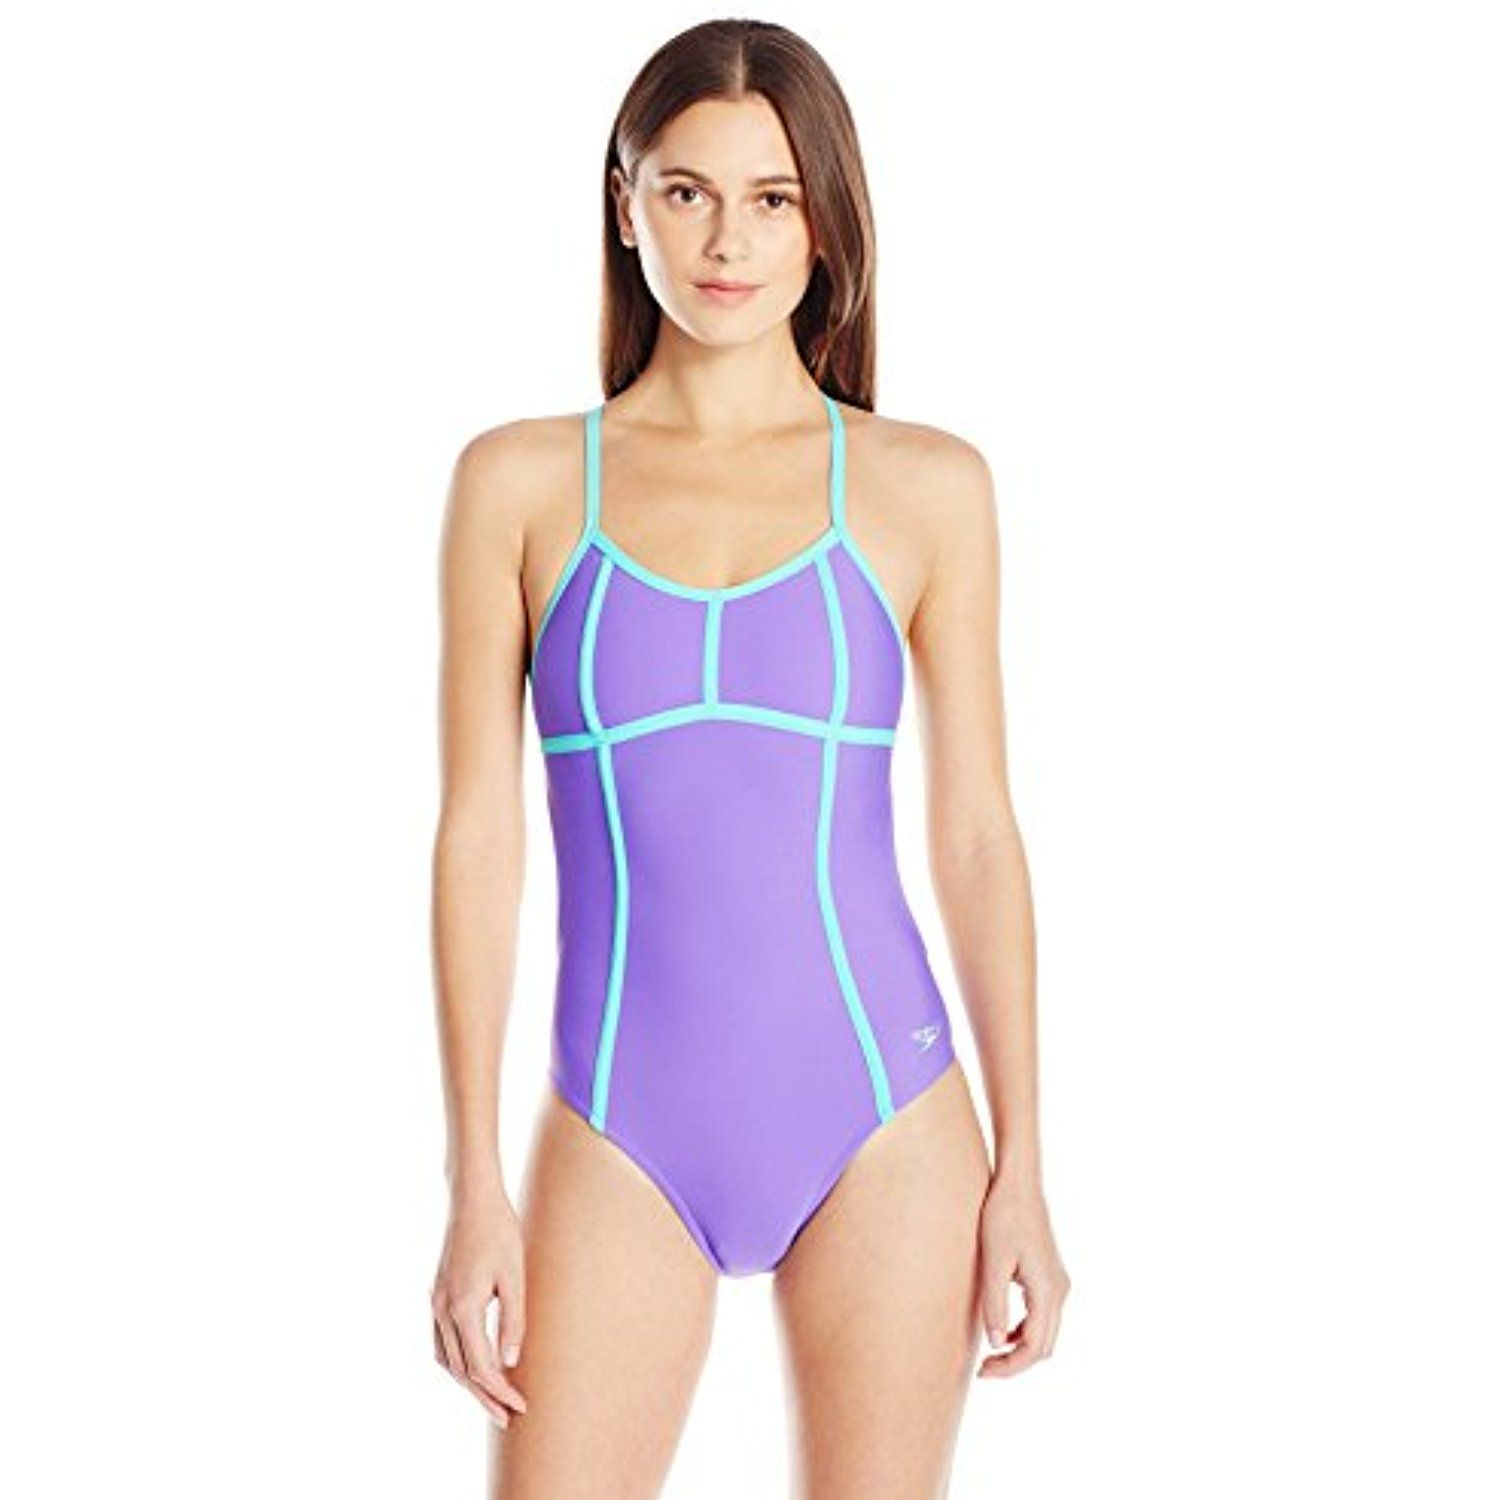 1f34f7b0f3 Speedo Women s Missy Franklin Signature Collection Endurance Lite Color  Block Tie Back One Piece Swimsuit     Check out this great product.